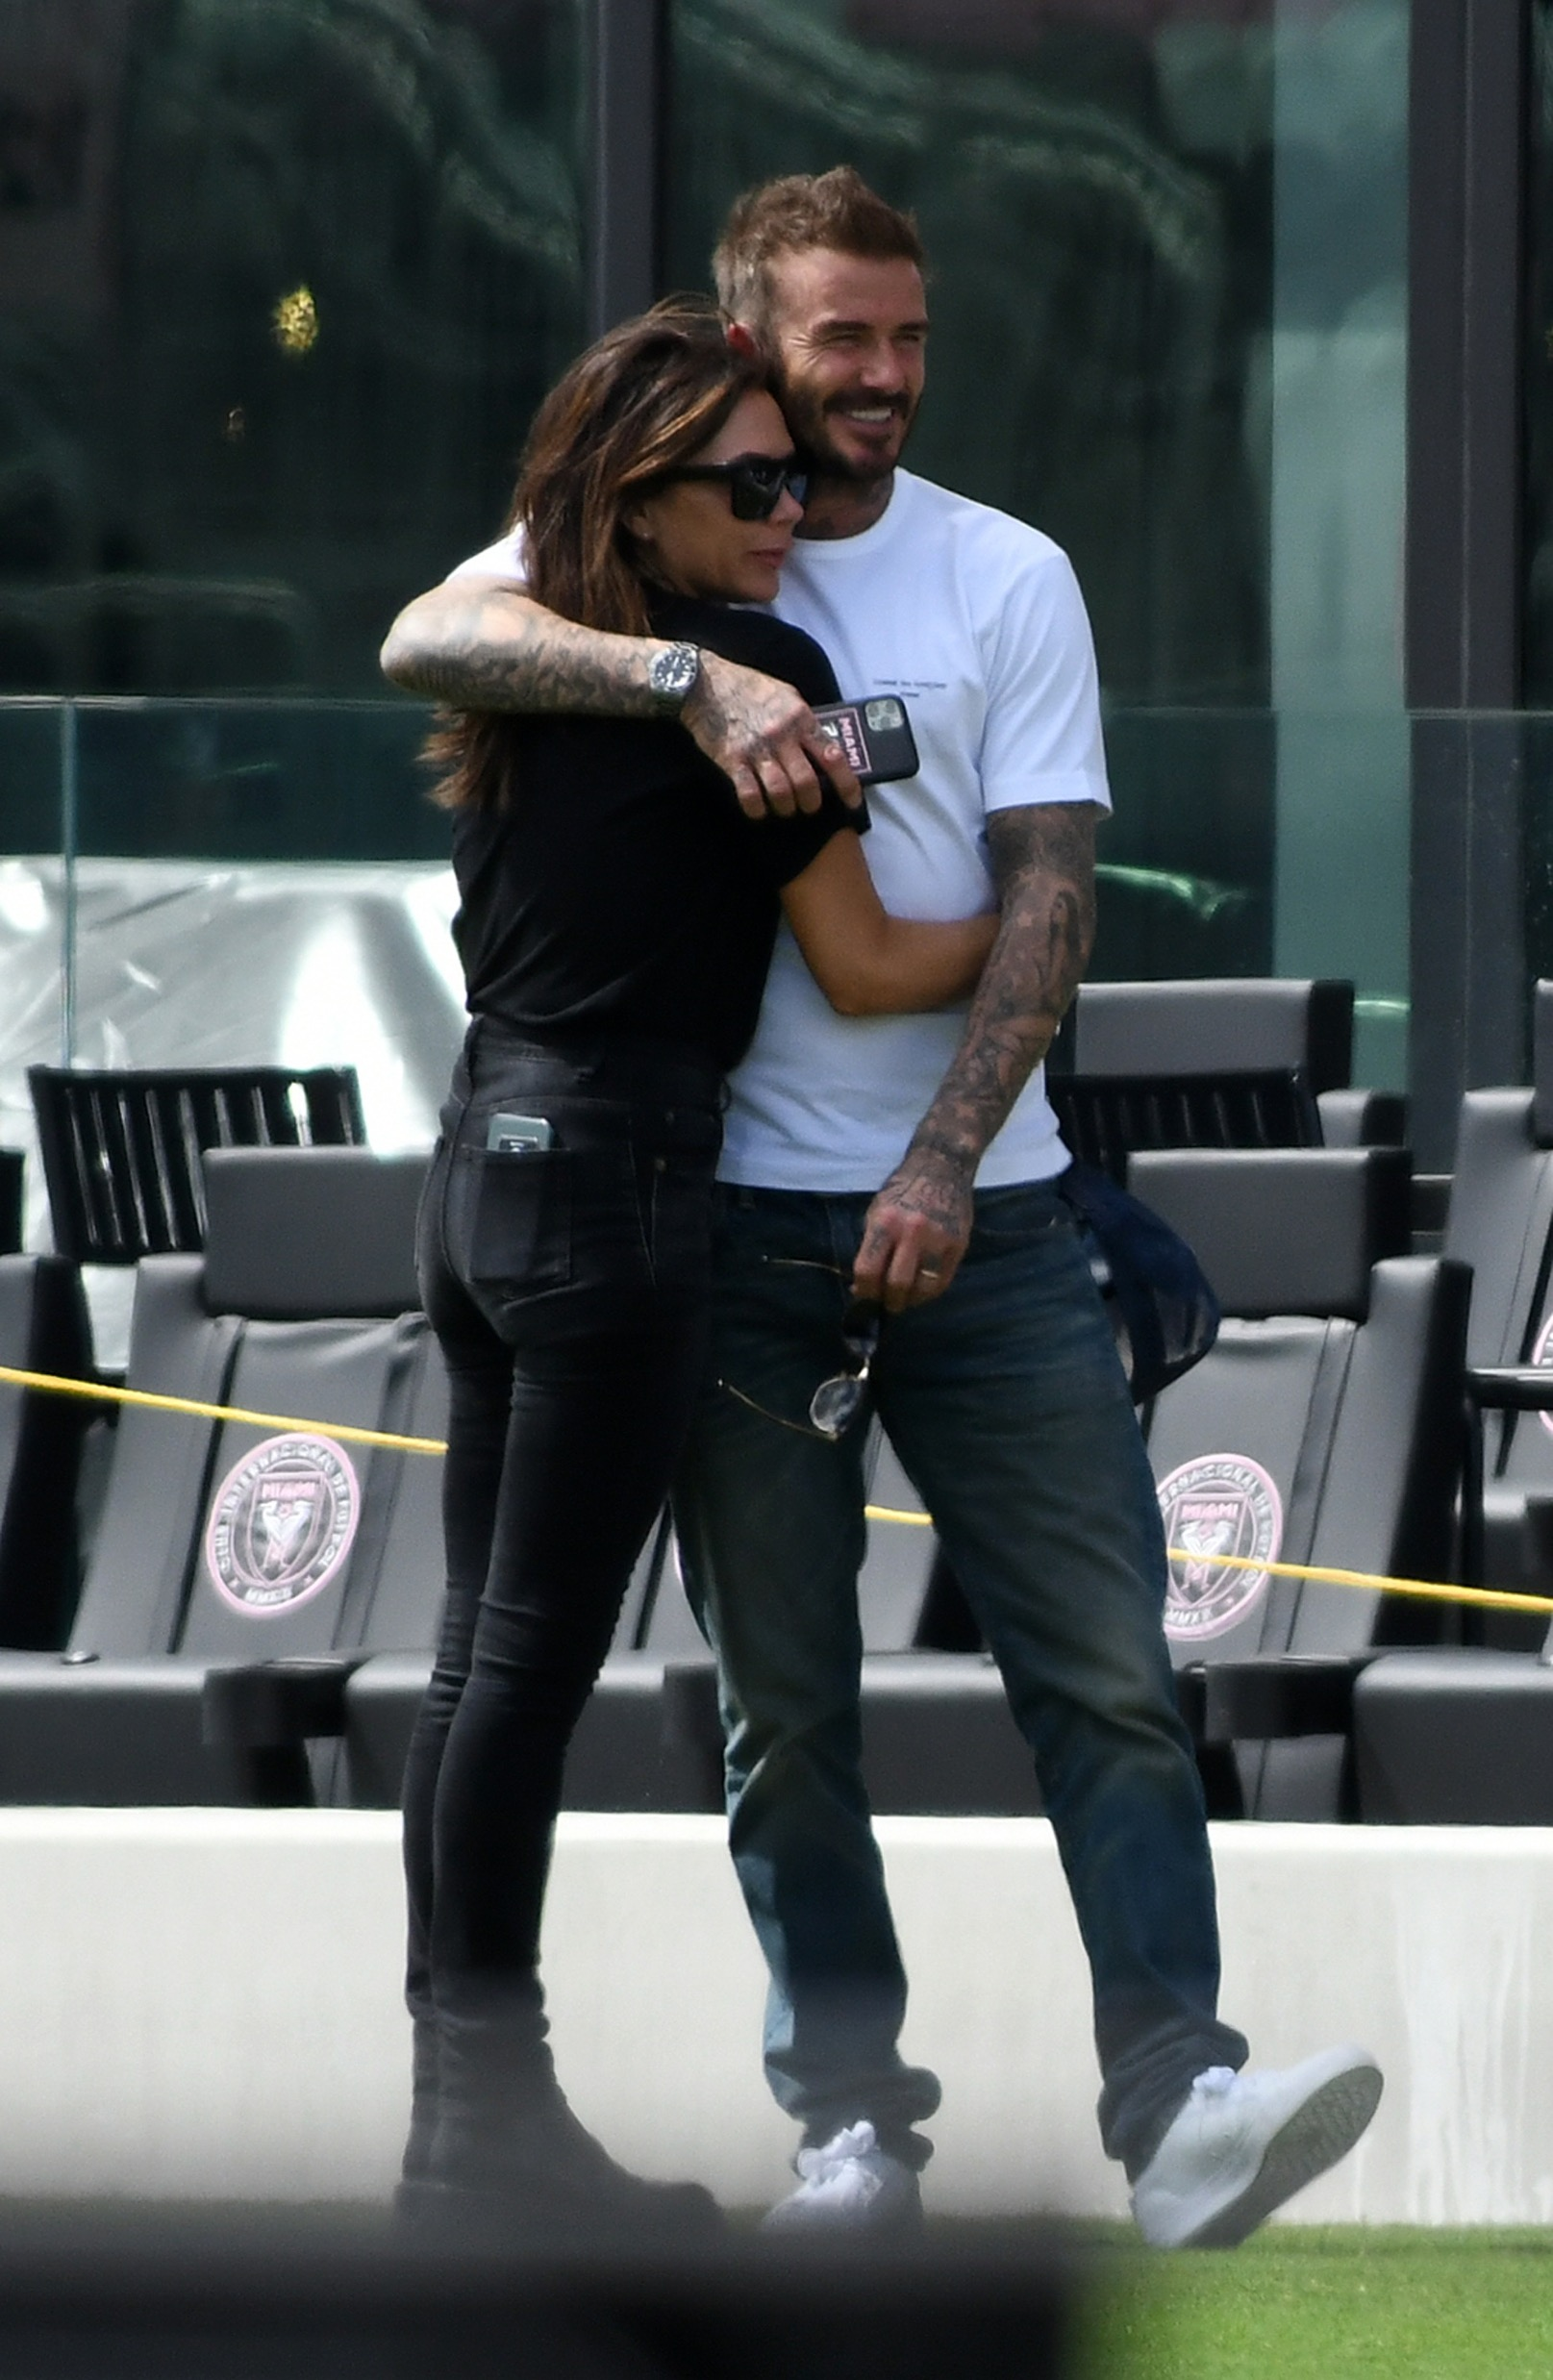 *PREMIUM EXCLUSIVE * David Beckham tenderly kisses wife Victoria as the entire family visits the temporary new home of his Miami football team. Brooklyn, 21, Romeo, 17, Cruz 15, and Harper, eight, joined their proud father for a personal tour of his team's stadium. Brooklyn, who turned 21 last week, packed on the PDA with American actress Nicola Peltz, 25, as did Romeo with his girlfriend Mia Regan. Victoria seemed to be having a ball and was seen dancing to music by the Spice Girls. The visit came after  fashion designer Victoria, 45, took to Instagram to update fans on her familys decision to travel to Miami to support husband David, also 45, for the launch of his football team Inter Miami CF. The former Manchester United and England star was just two games into the season when the Major Soccer League announced they have suspended their league season for the next 30 days because of coronavirus fears. 14 Mar 2020, Image: 506559728, License: Rights-managed, Restrictions: World Rights, Model Release: no, Credit line: Splash News/MEGA / The Mega Agency / Profimedia